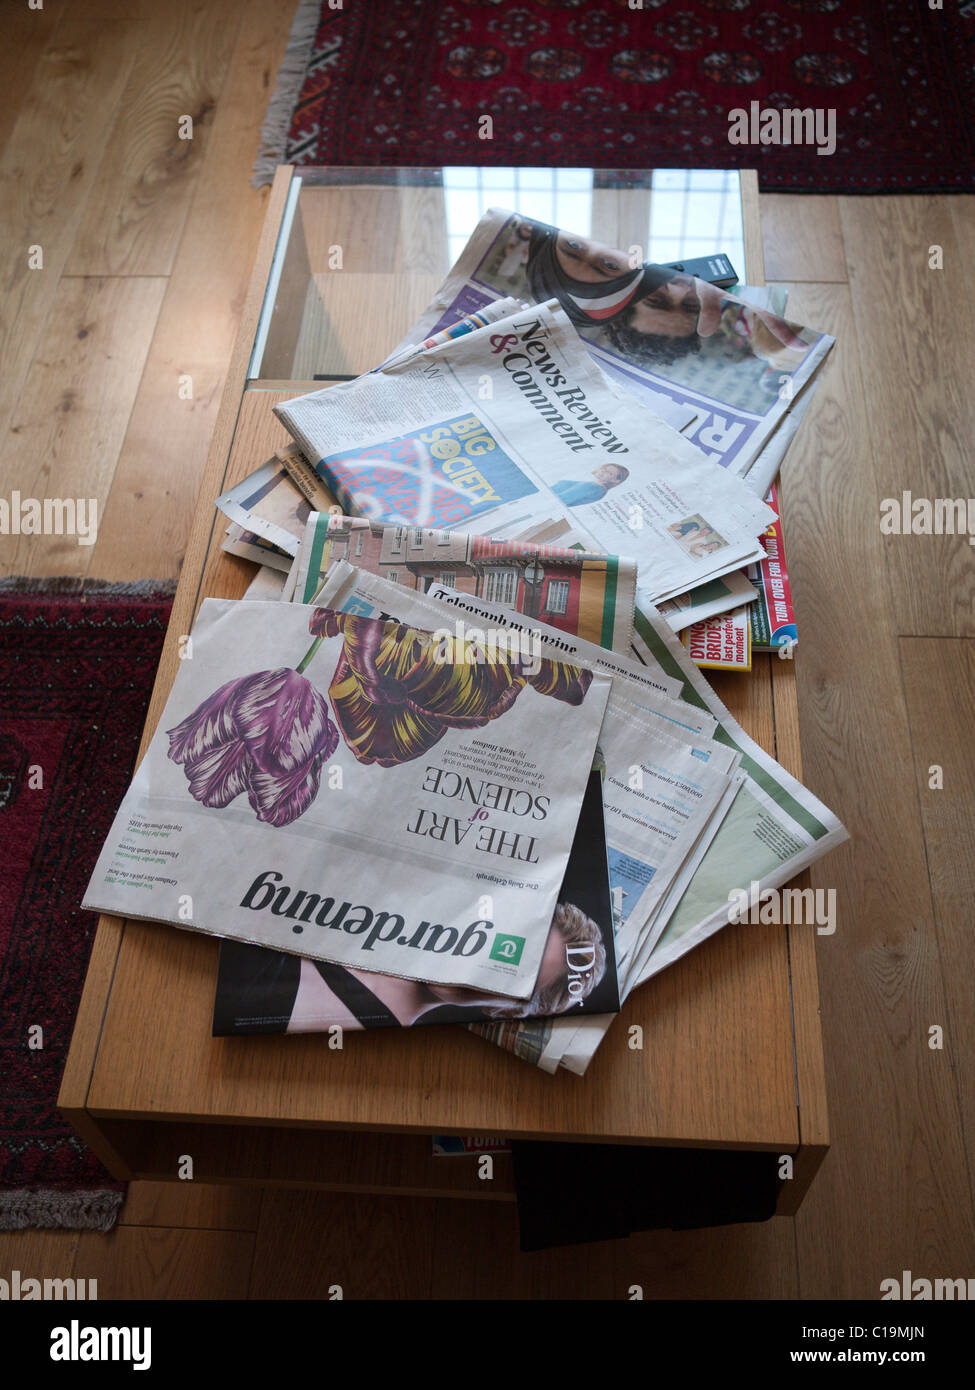 newspapers scattered on a coffee table stock photo: 35249165 - alamy